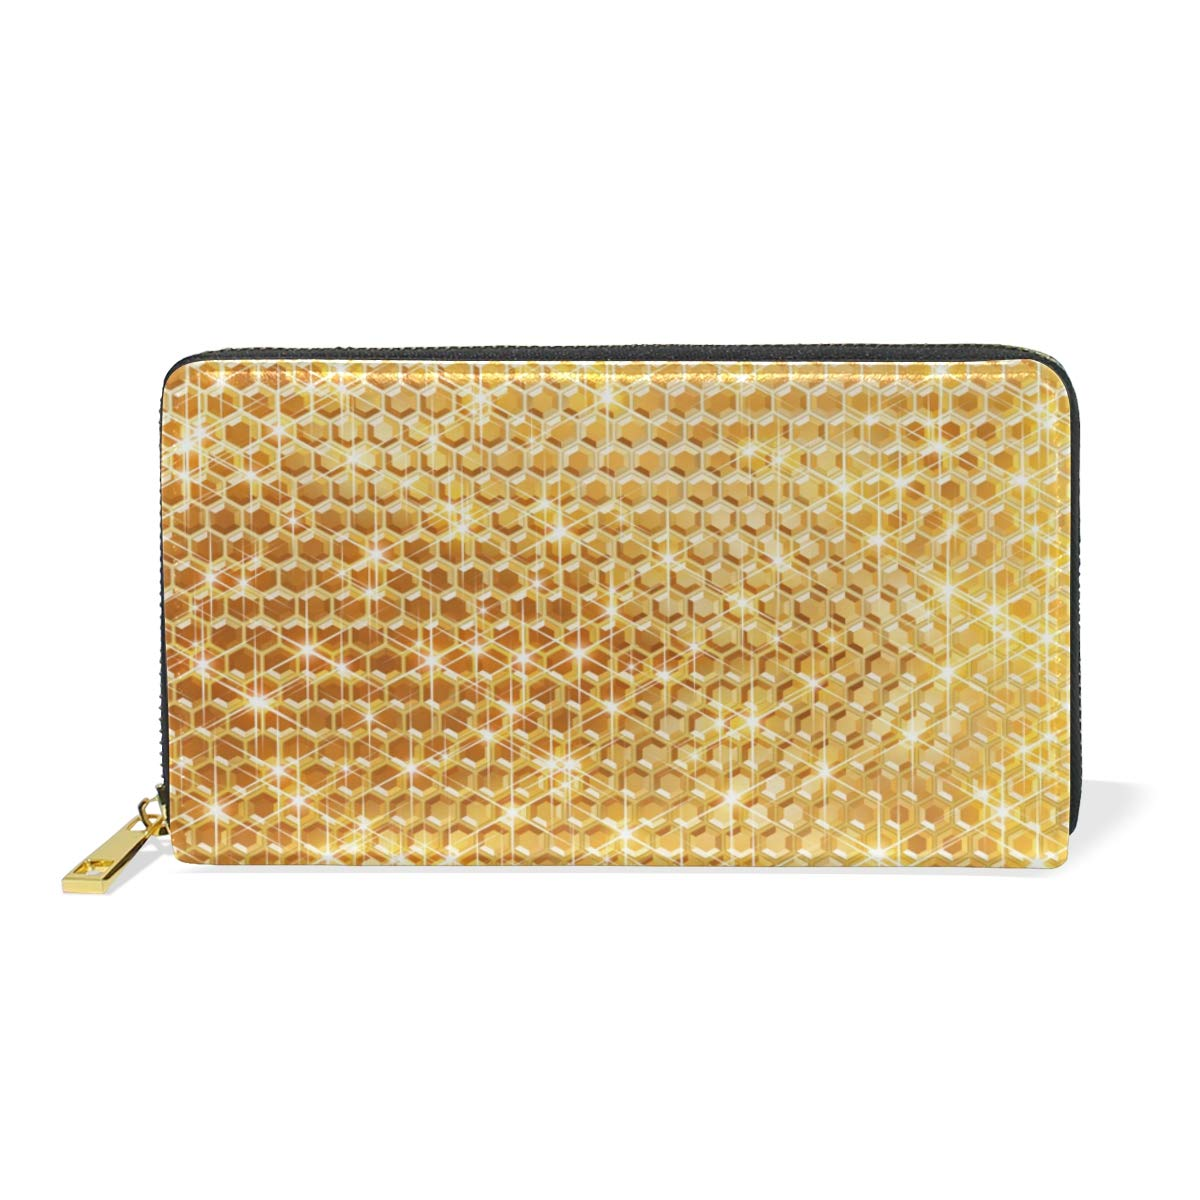 GIOVANIOR Gold Backgrounds Womens Clutch Purses Organizer And Handbags Zip Around Wallet